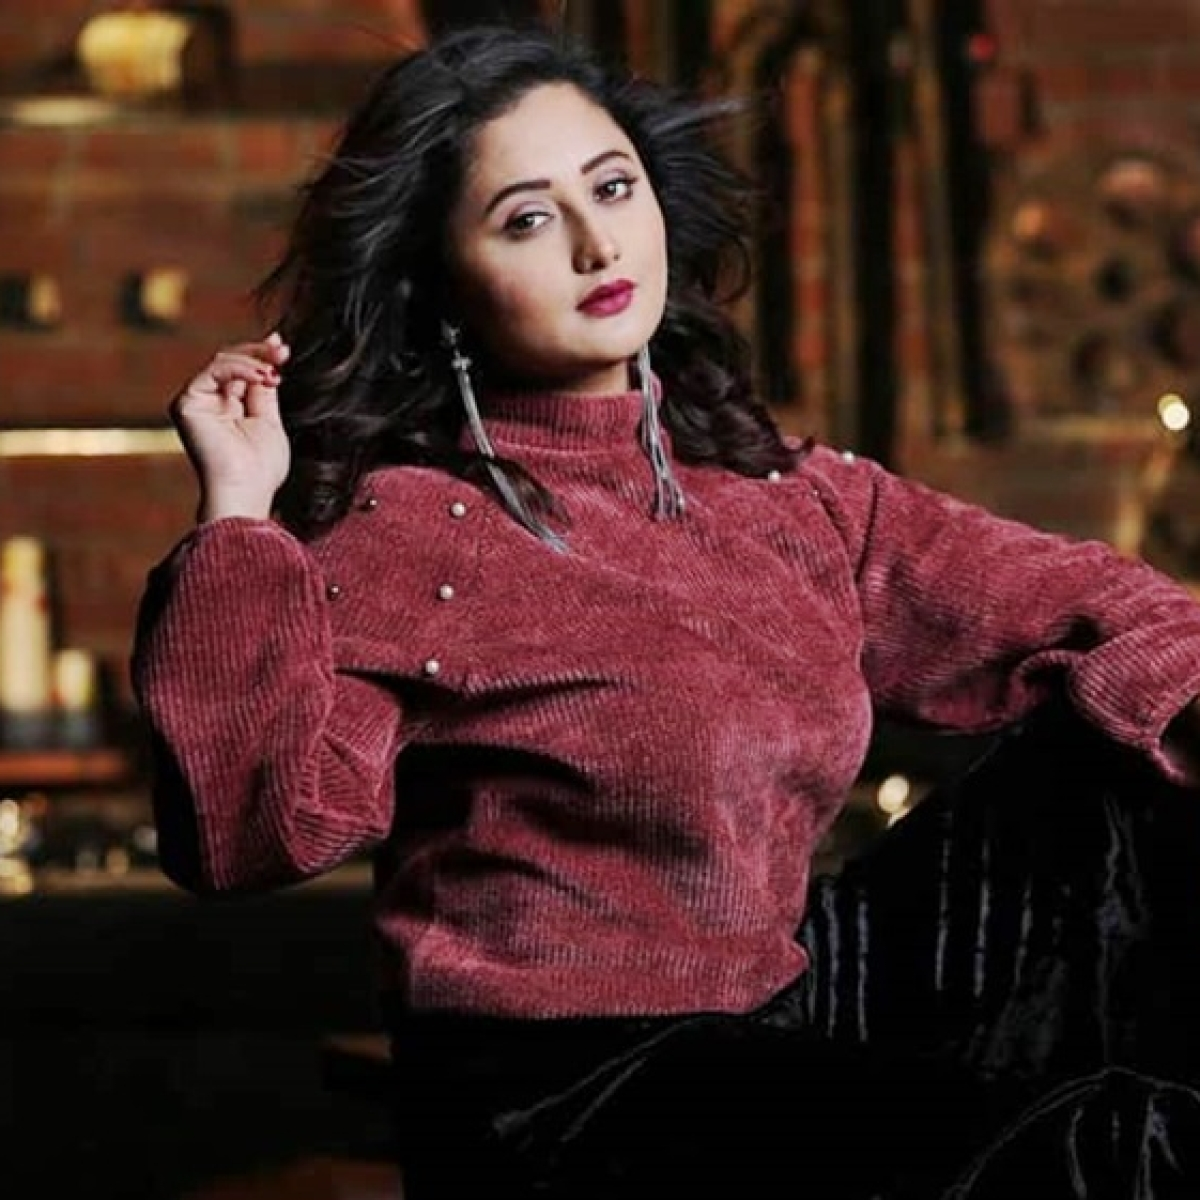 Rashami Desai on wedding in 'Bigg Boss': Who's spreading such rumours?